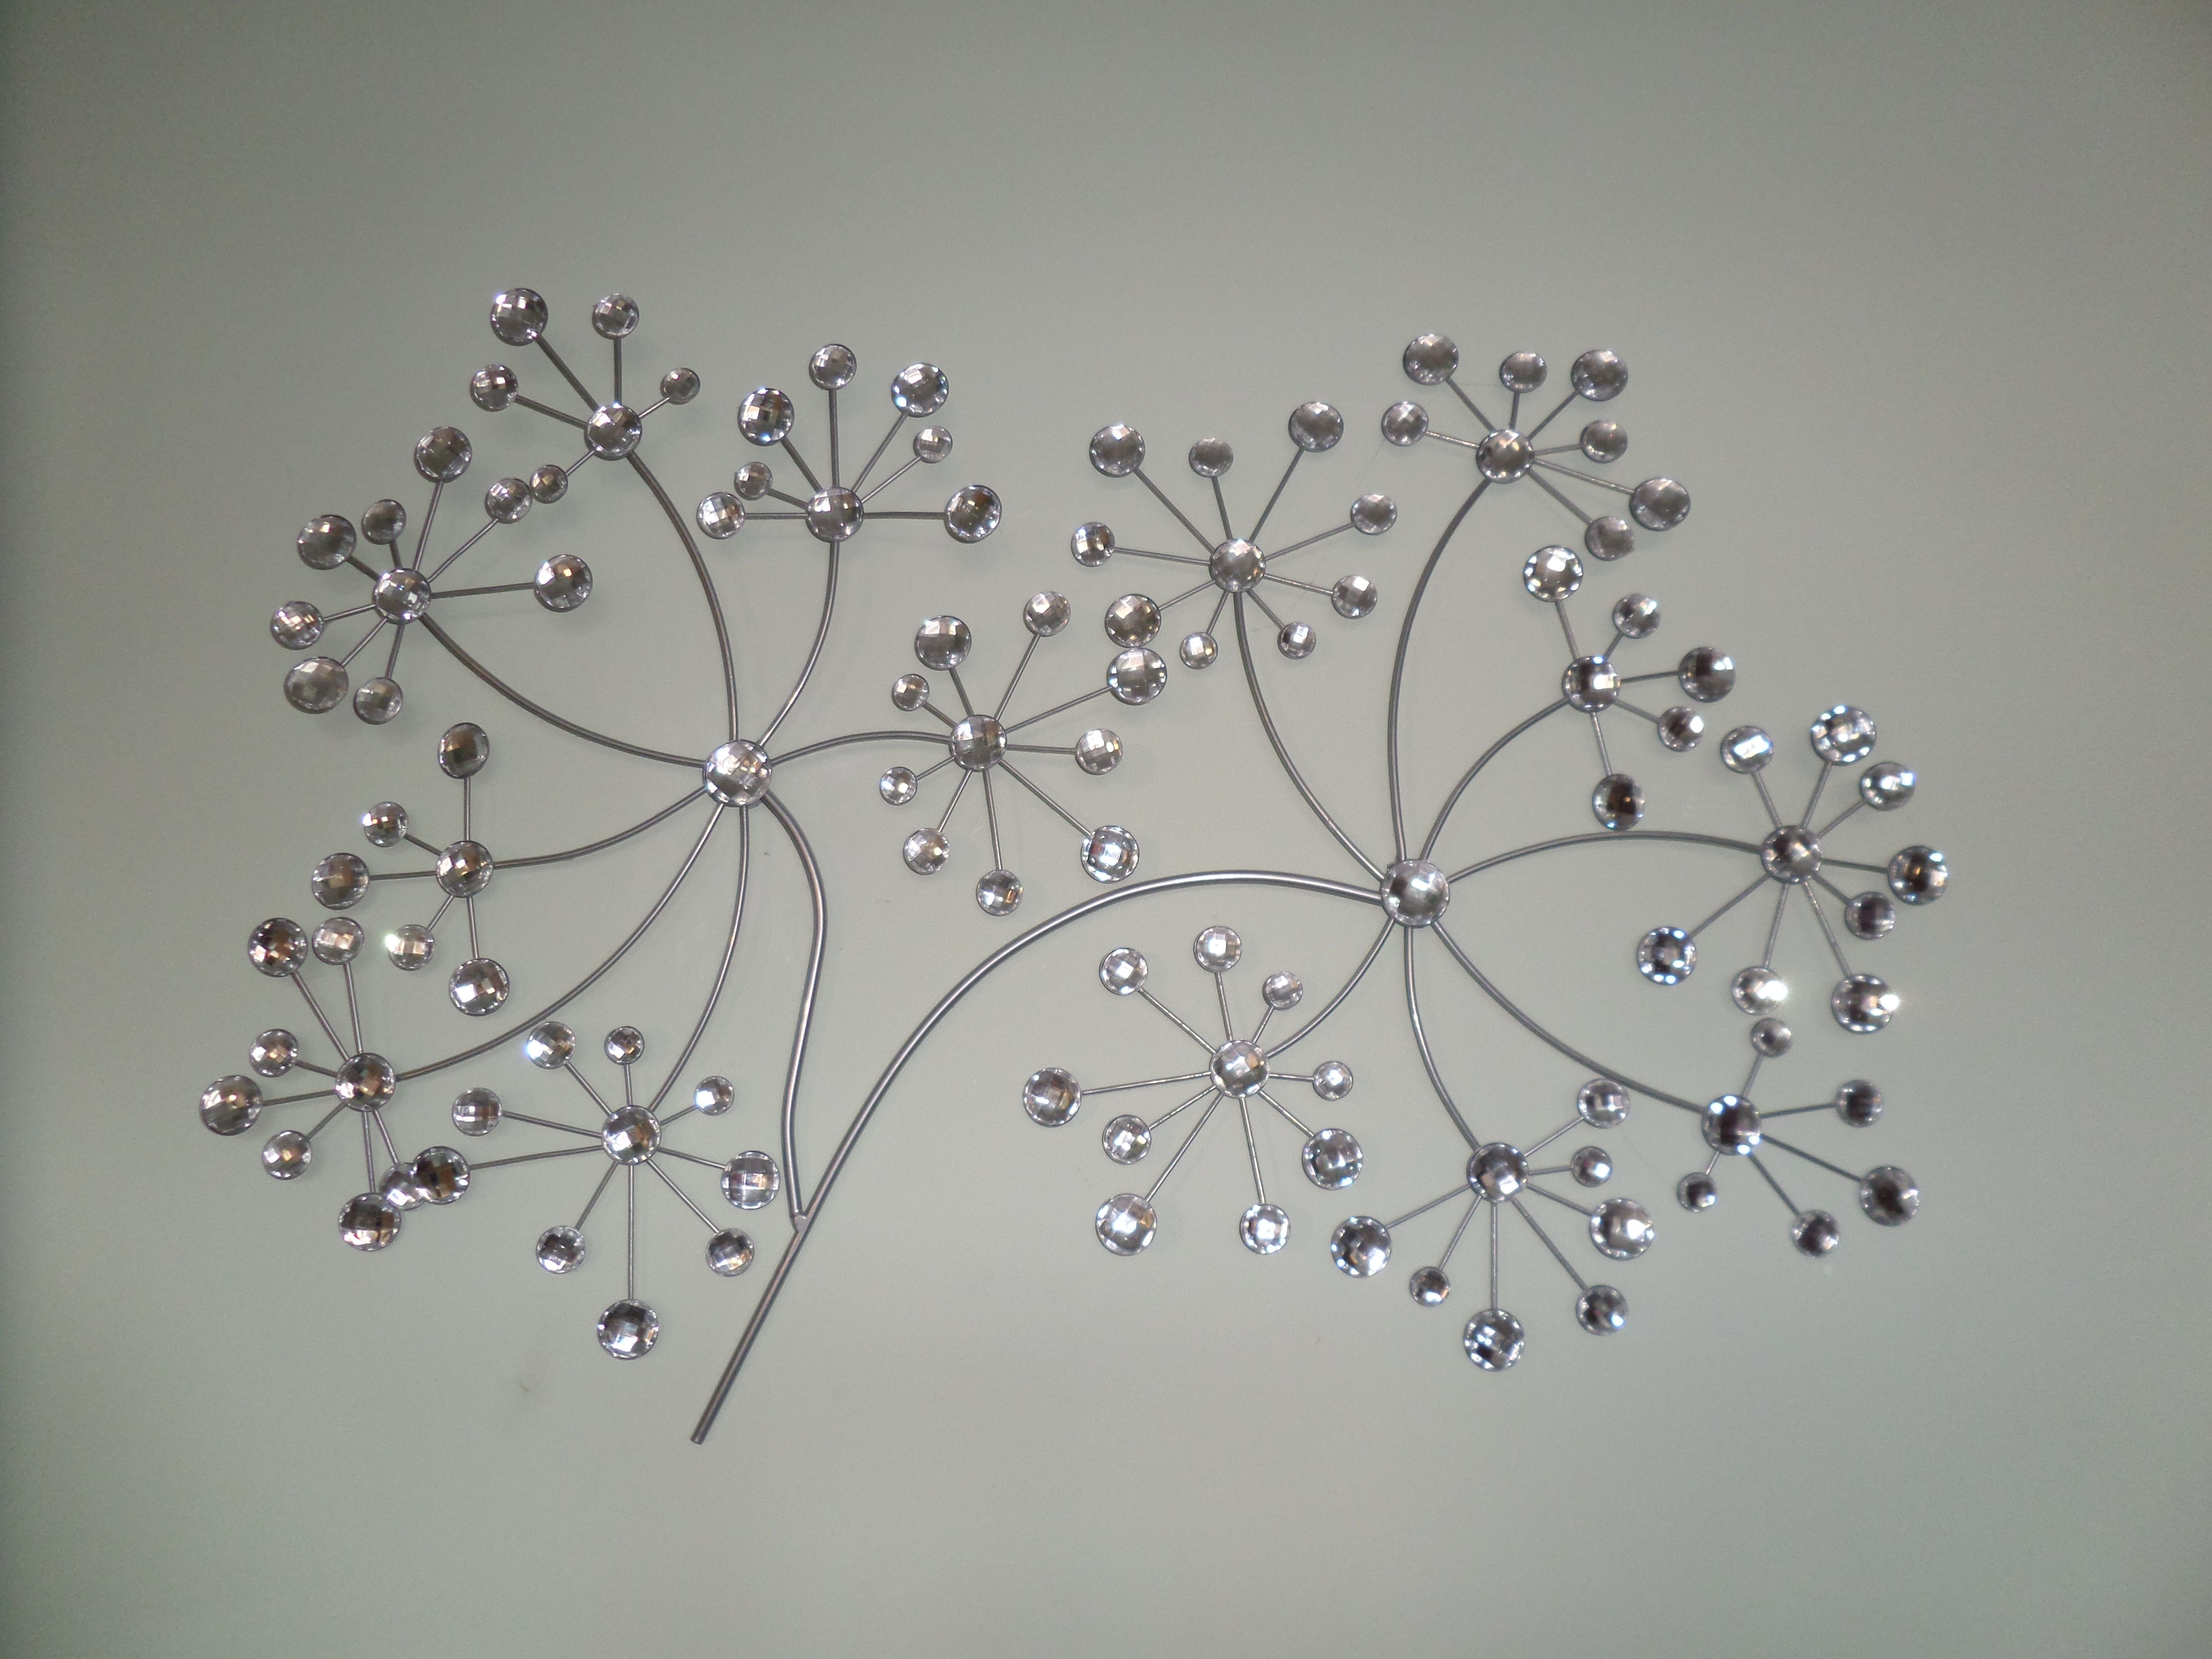 Sparkly Silver Wall Art For My Bedroom Seed Head From The Range